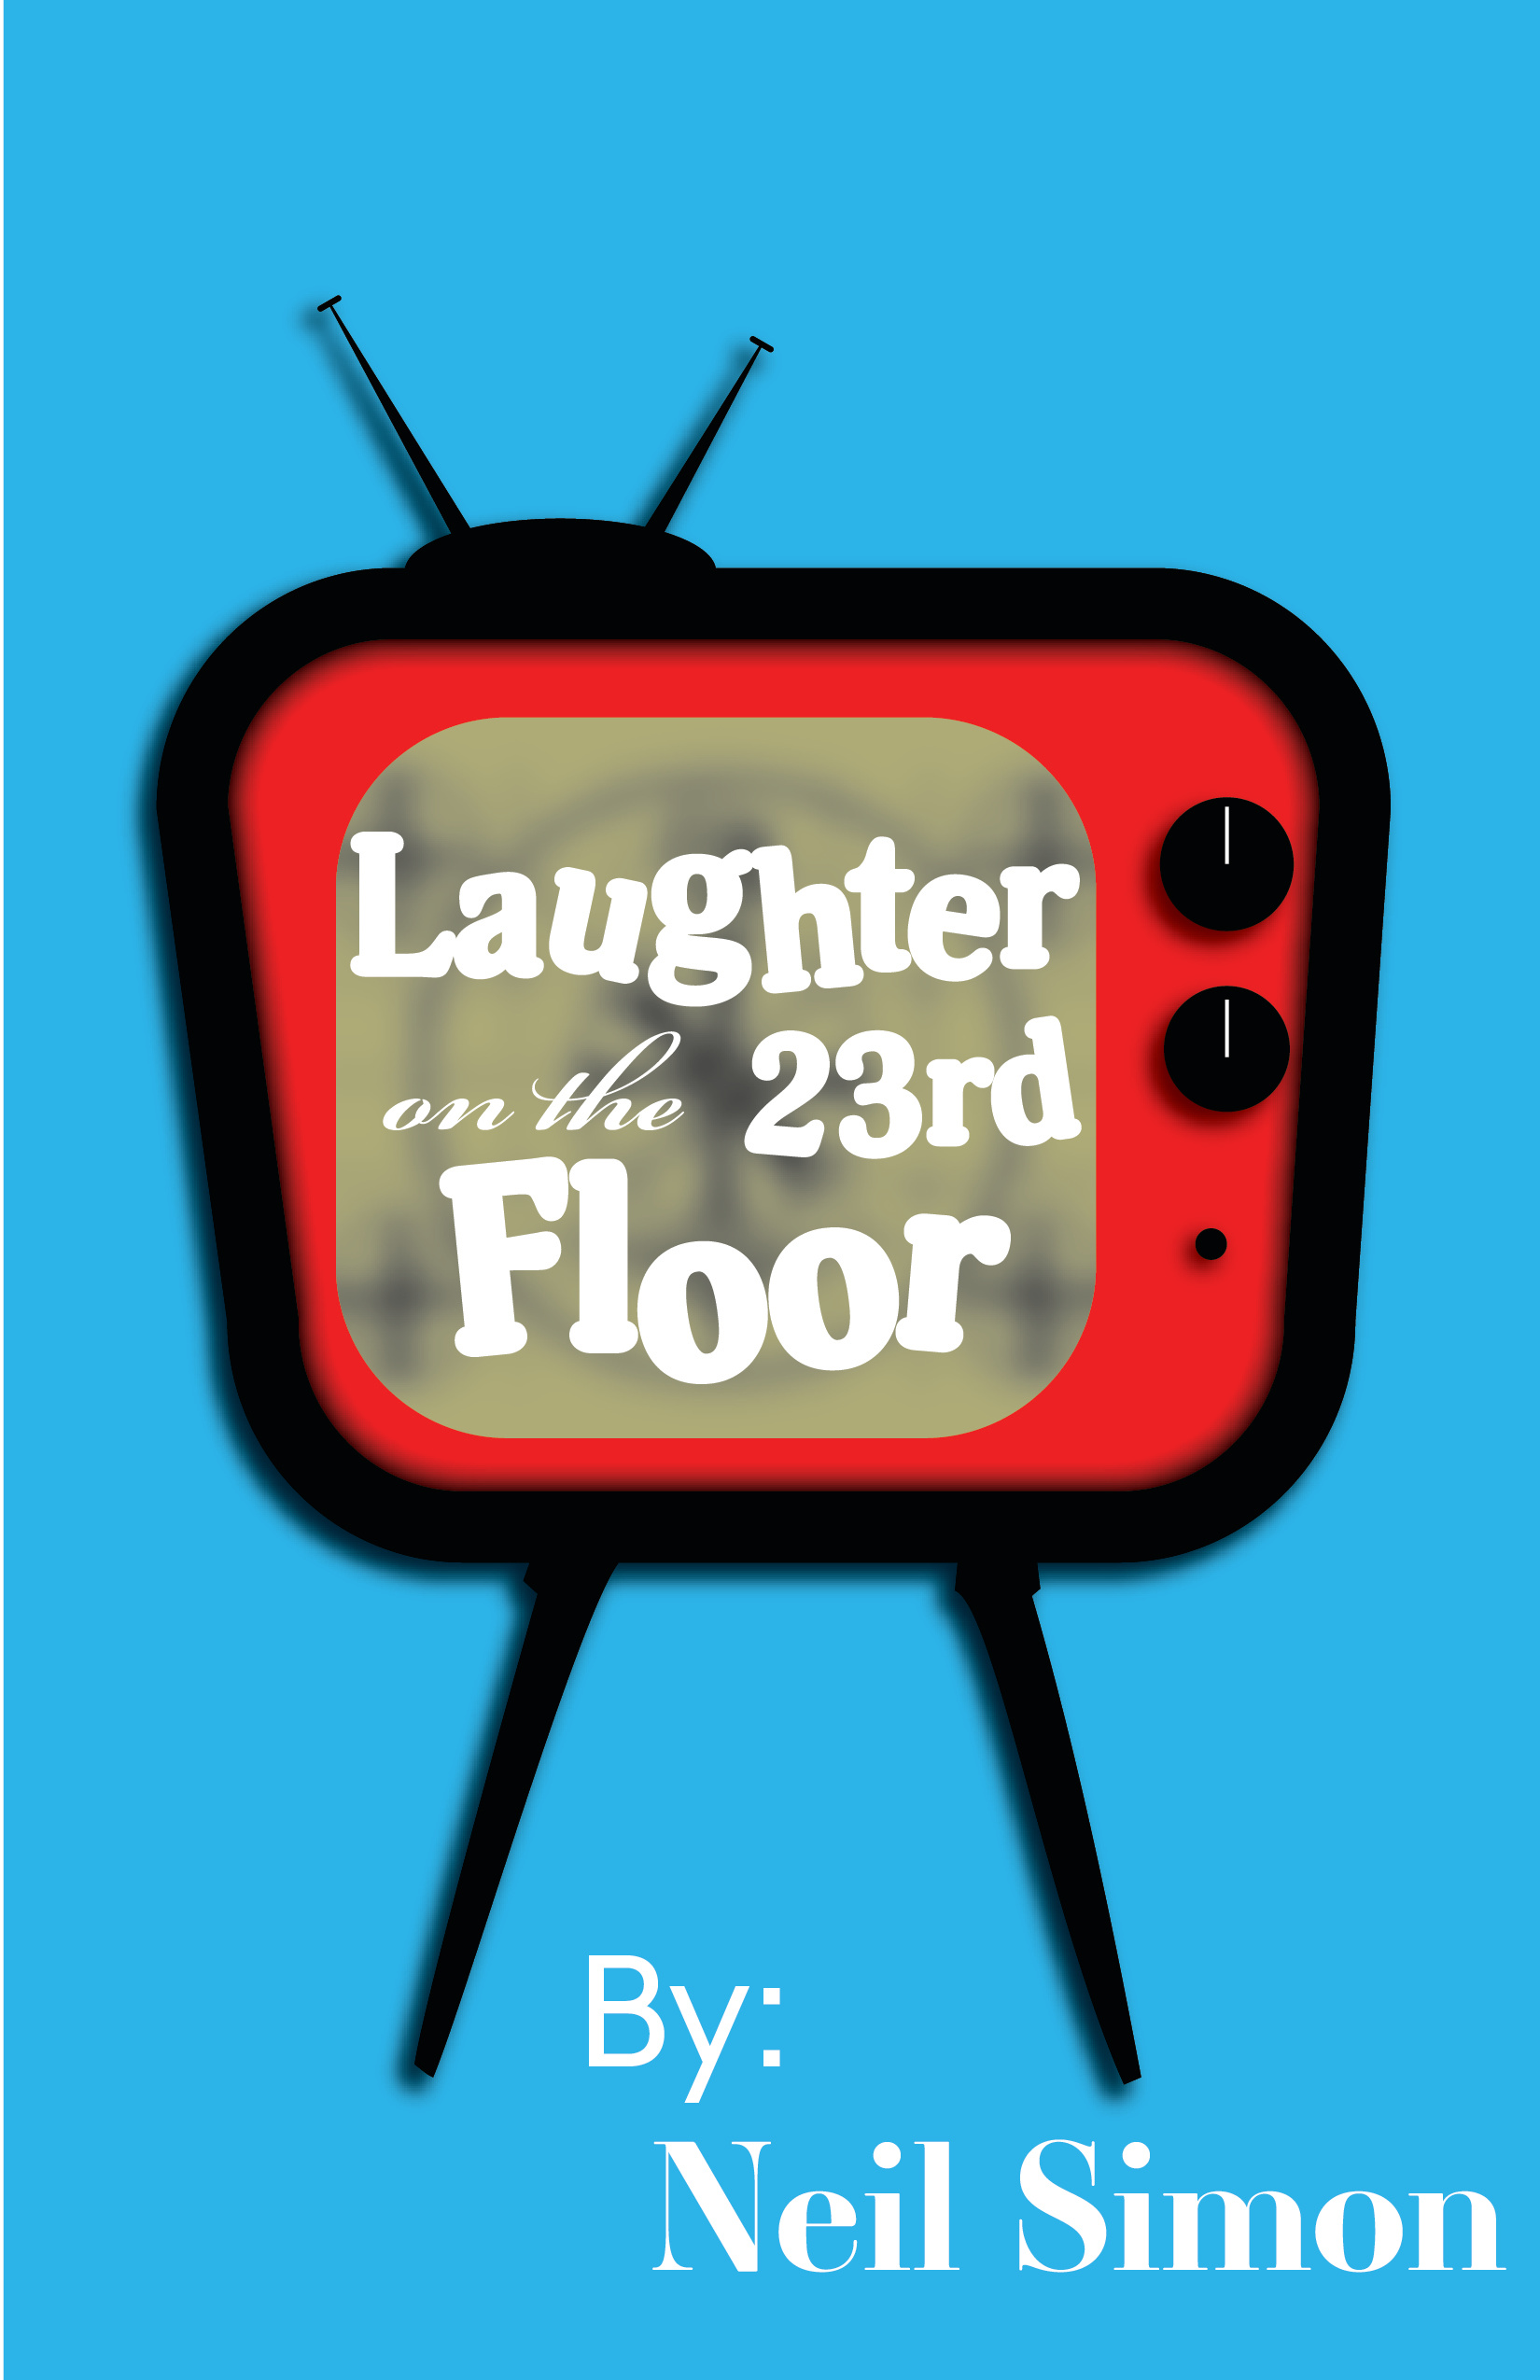 Laughter On the 23rd Floor letter-01